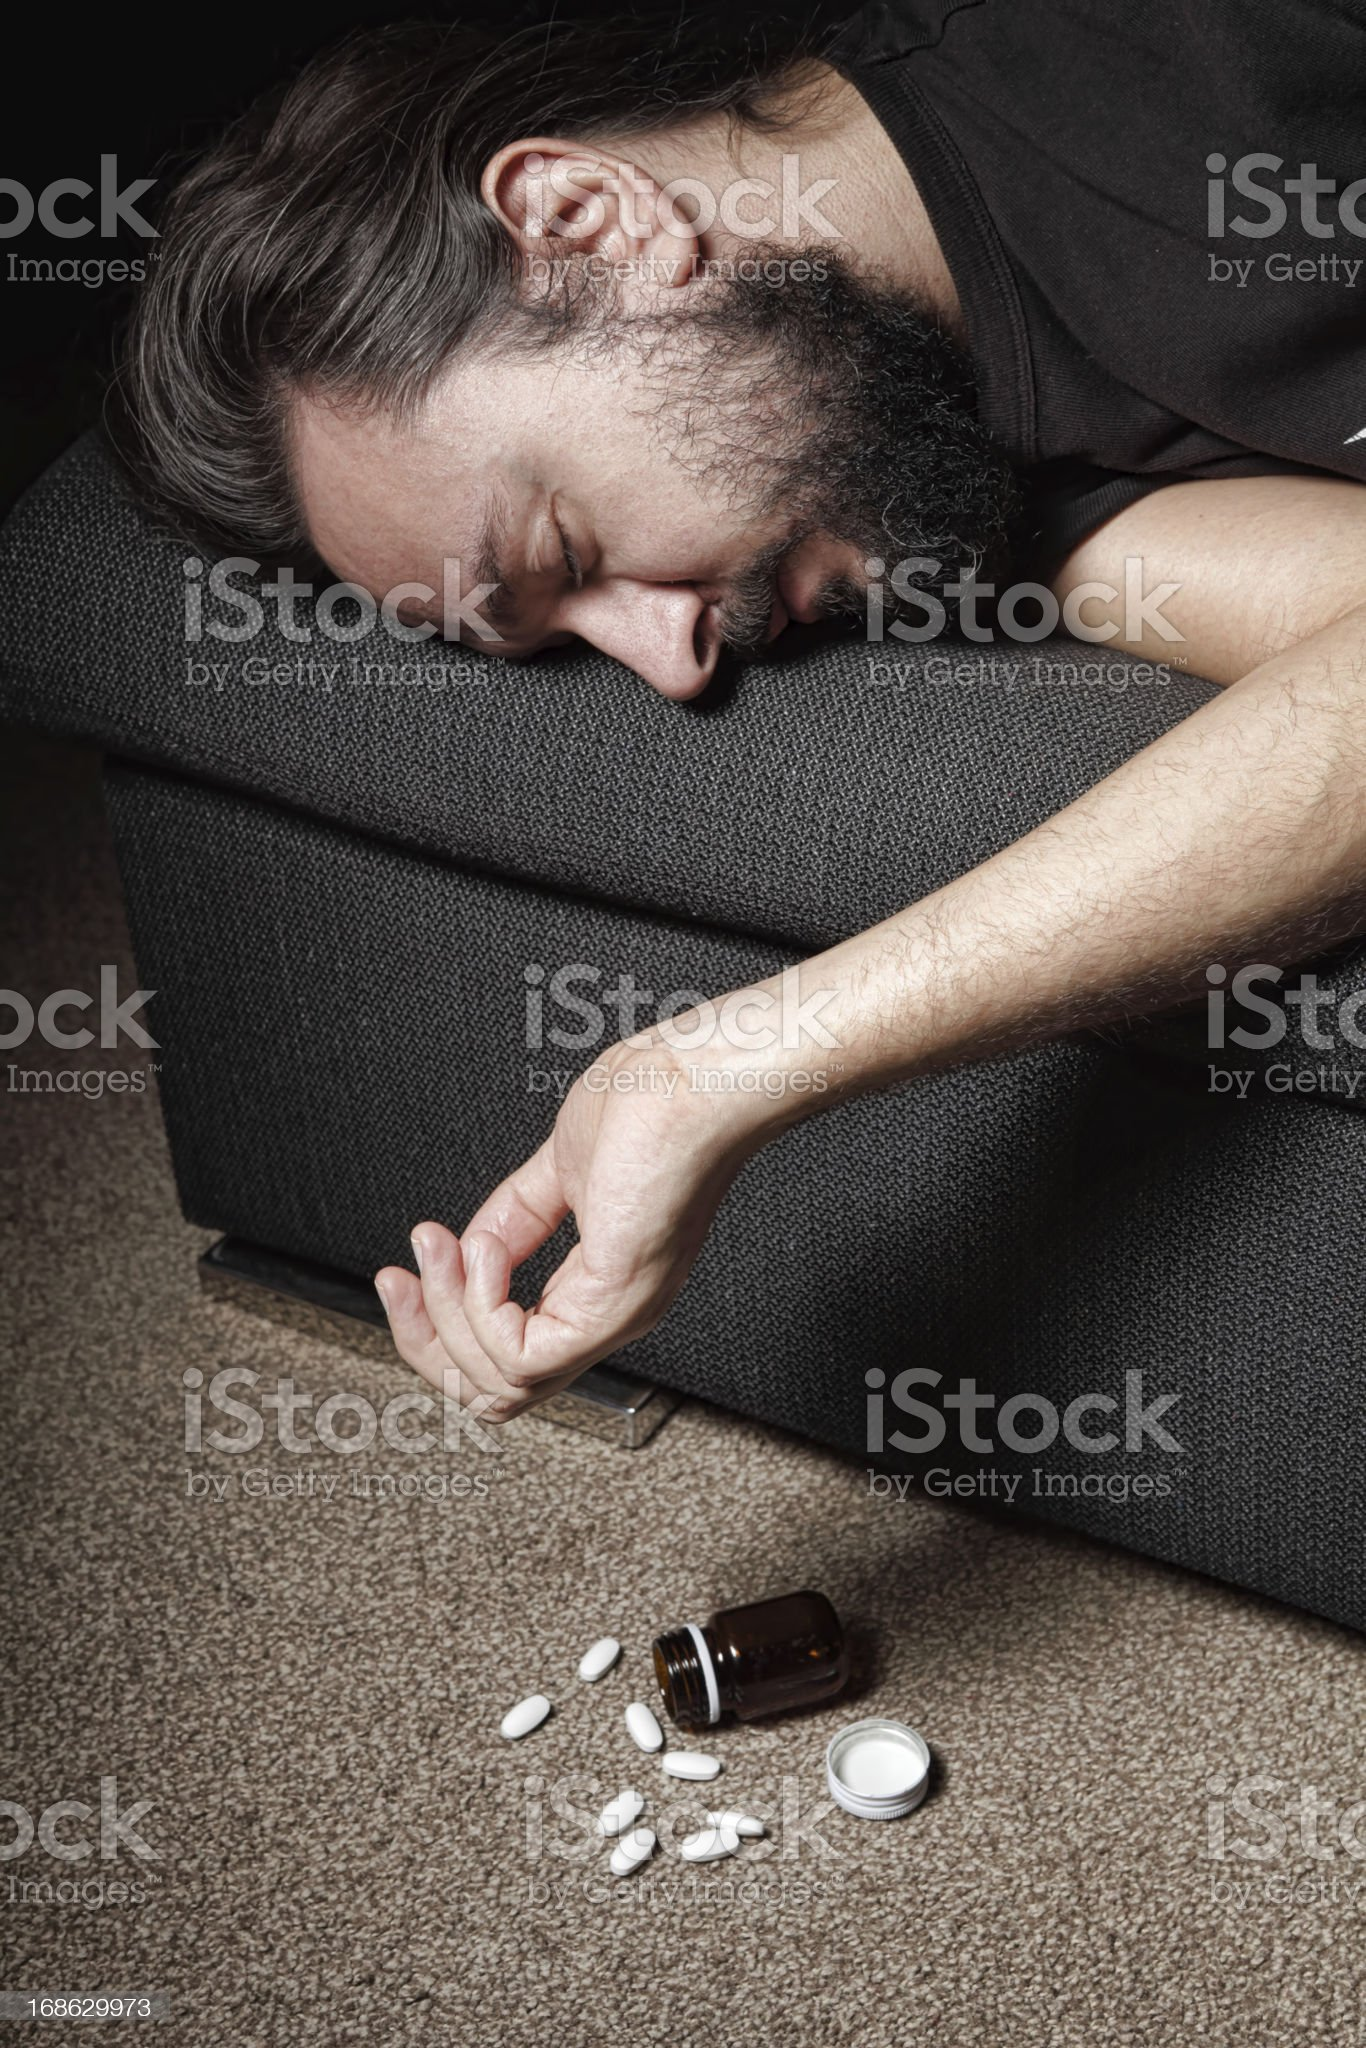 man attempting suicide royalty-free stock photo